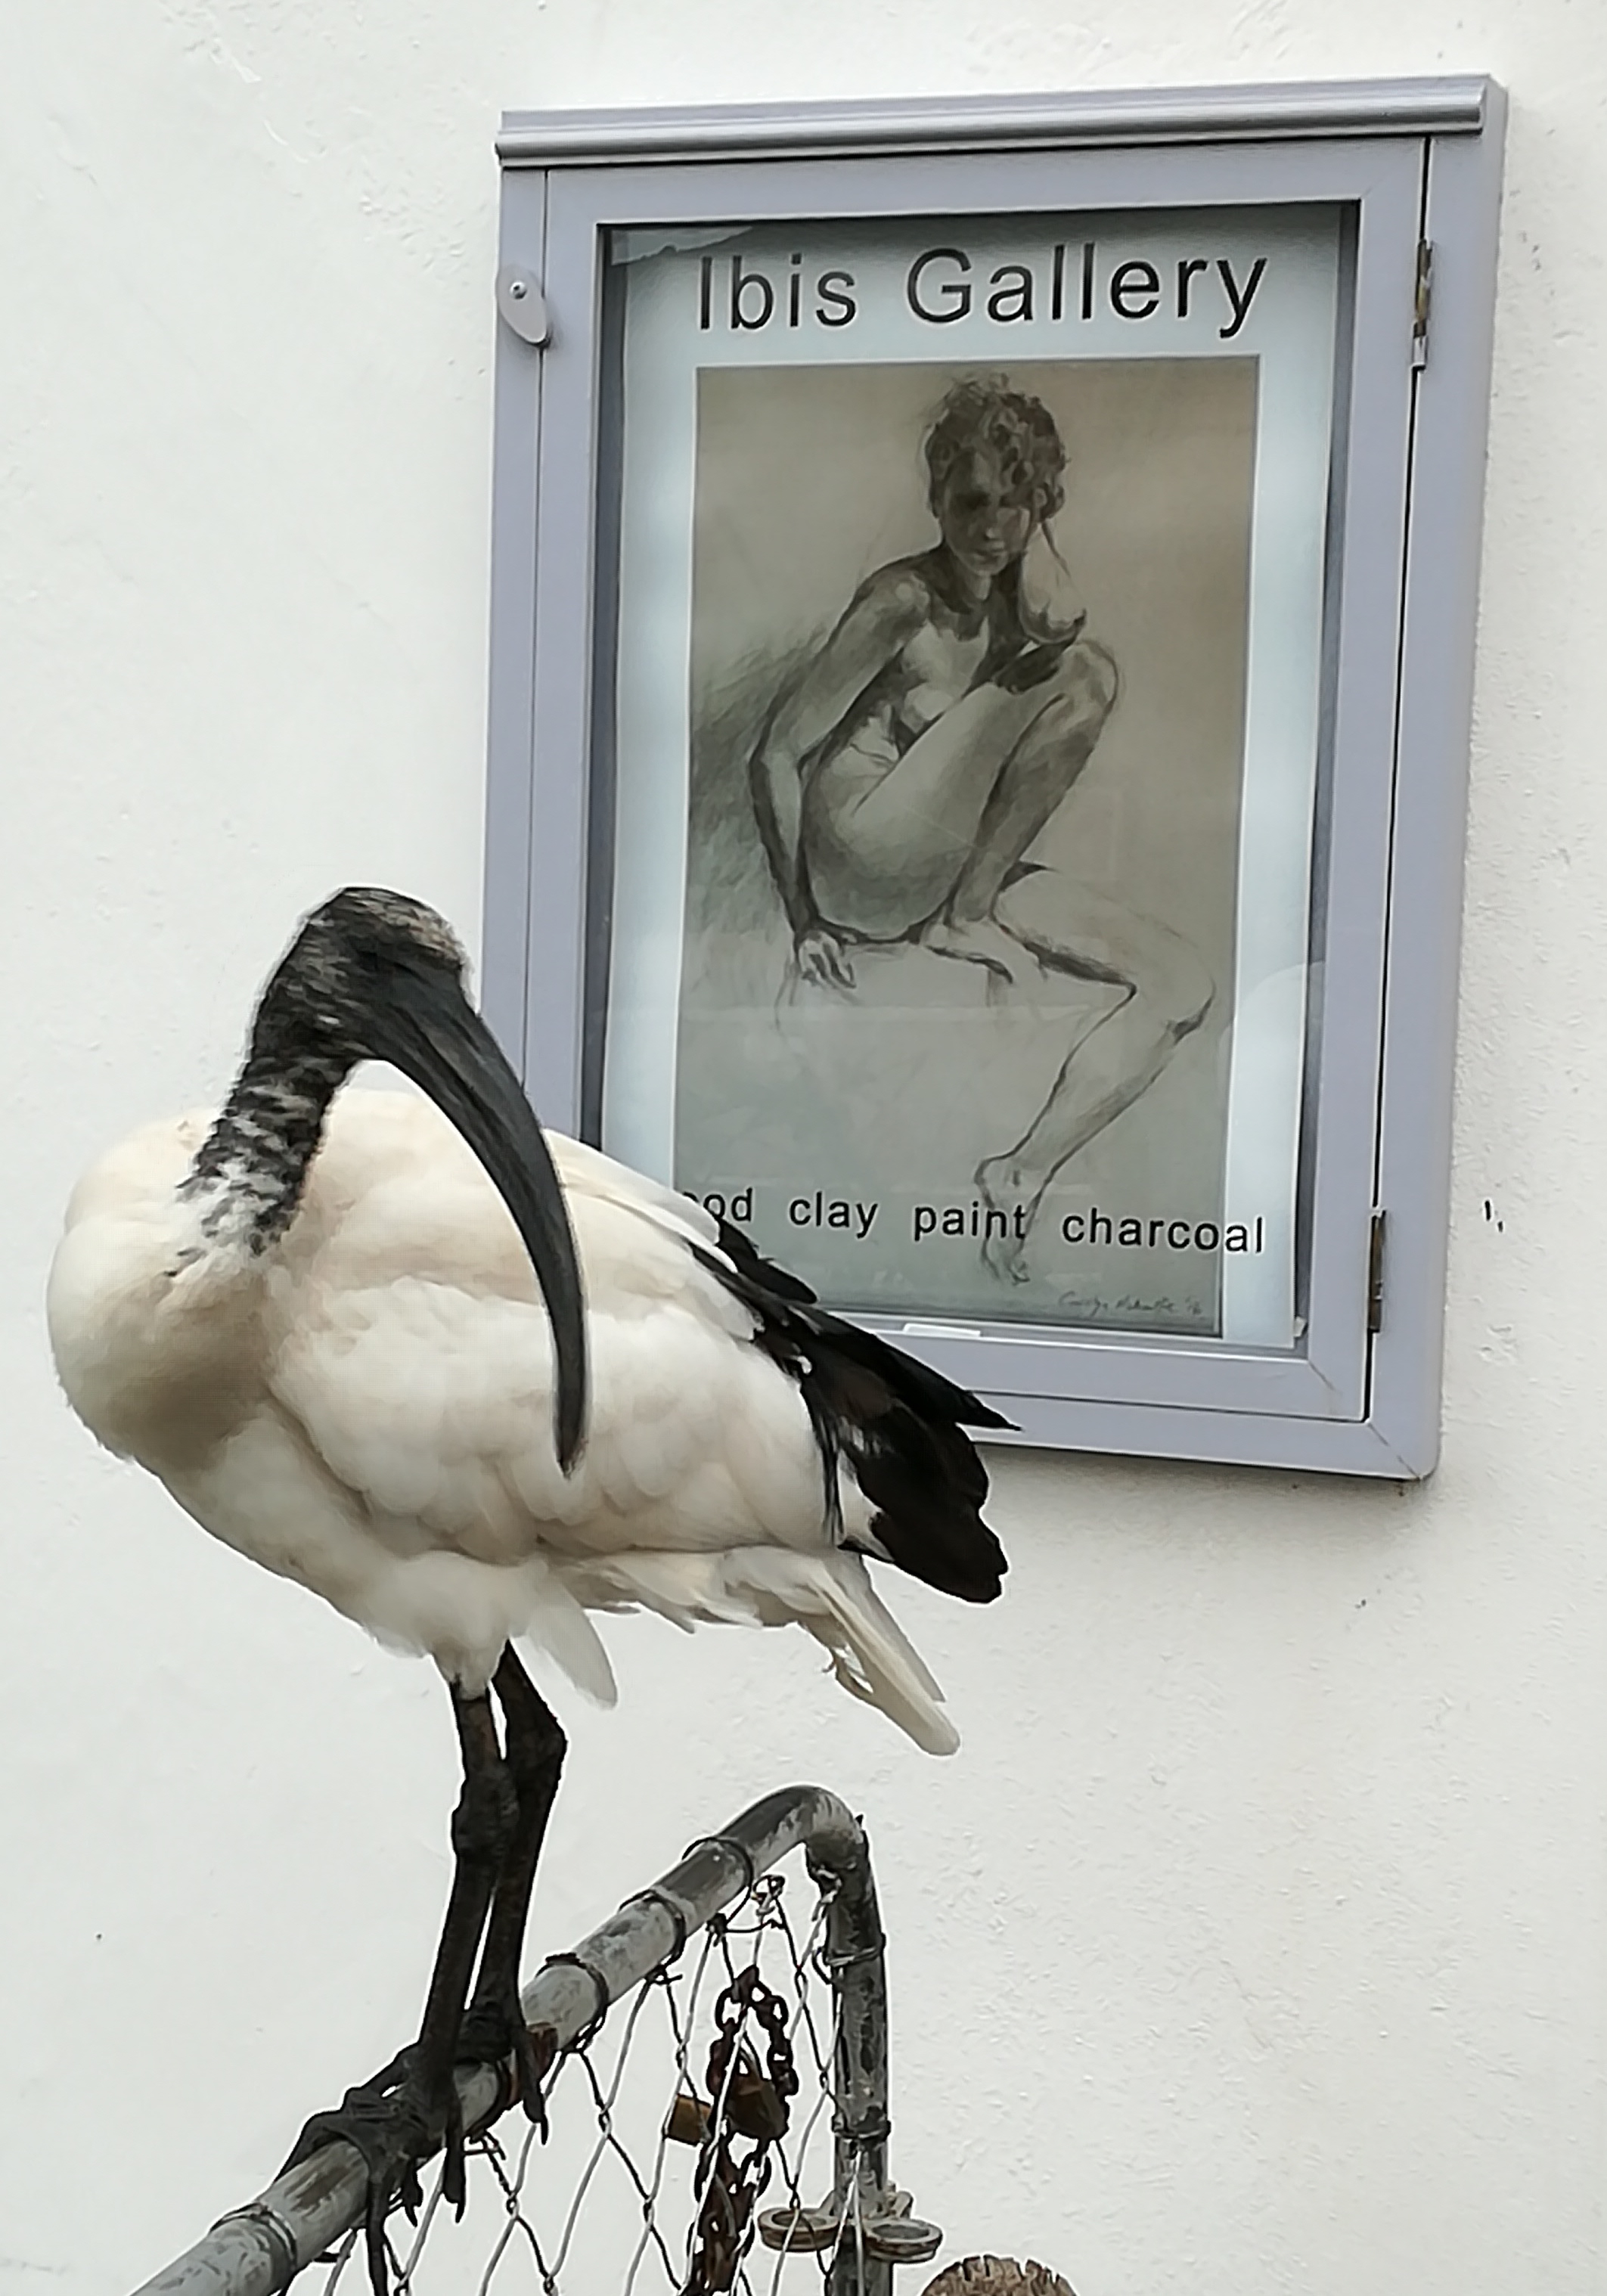 Turkey the Sacred Ibis. An orphan from the past breeding season who lives in and around the gallery